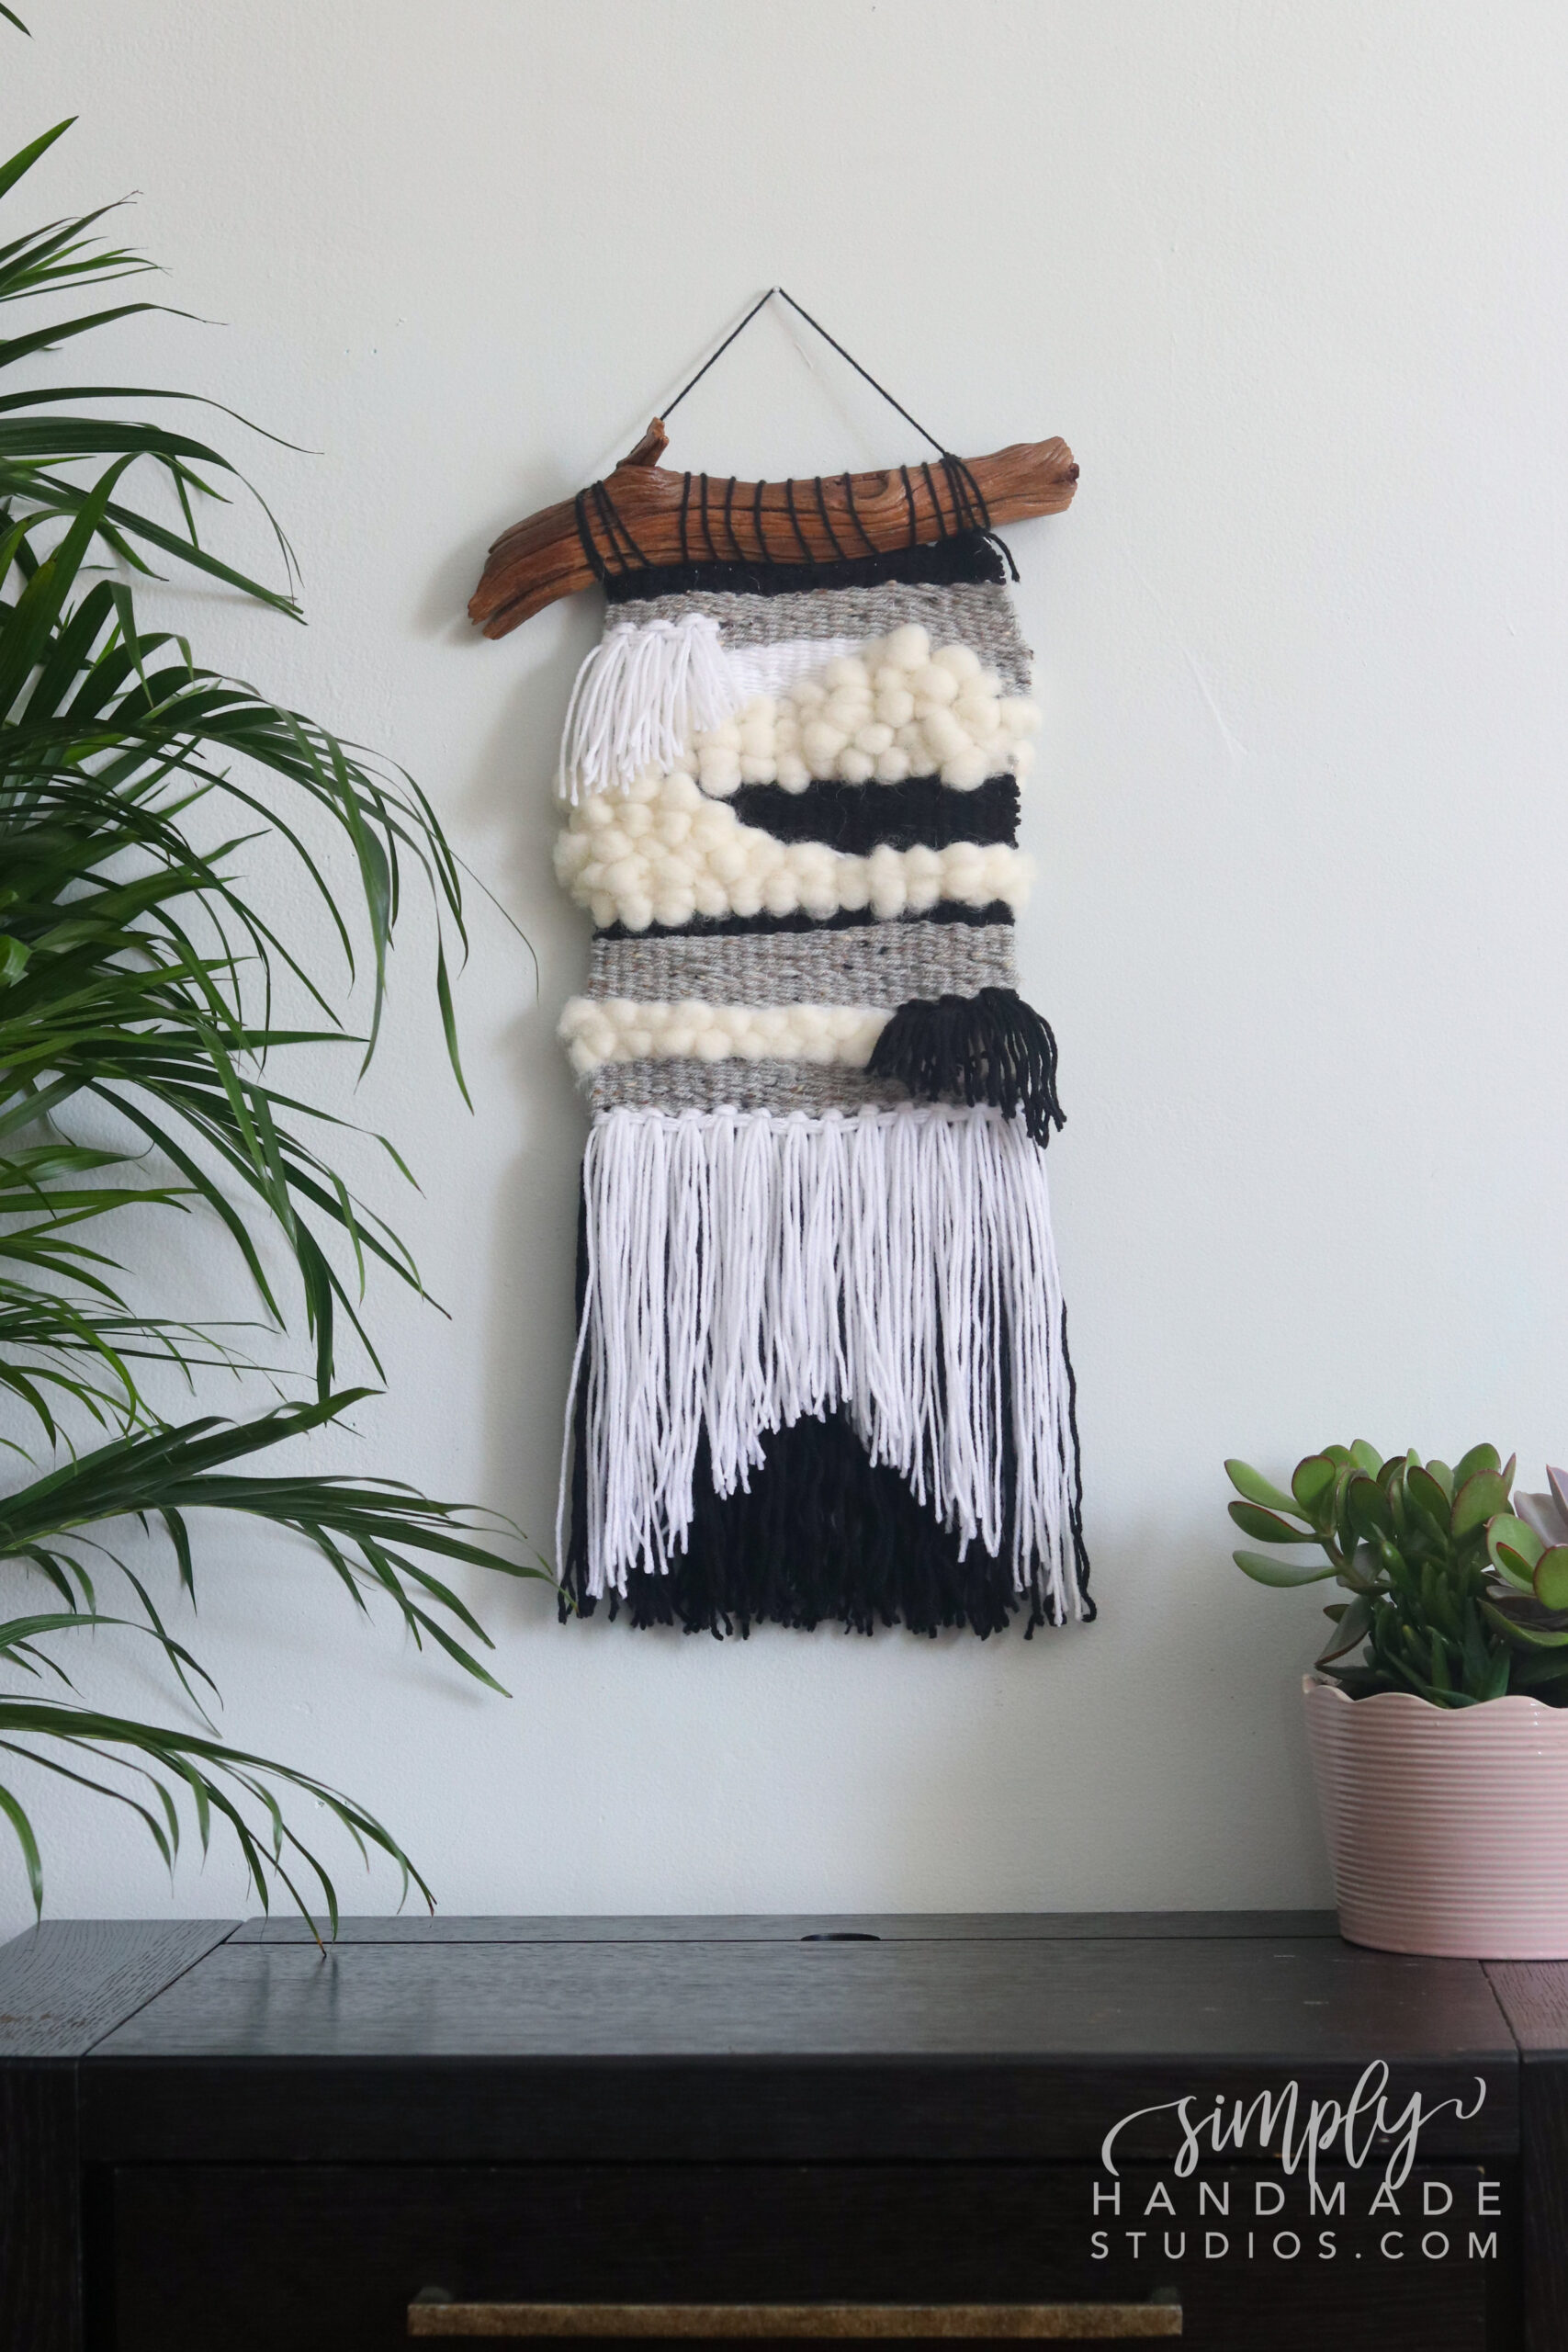 Learn to Weave 3 Basic Weaving Patterns for Beginners